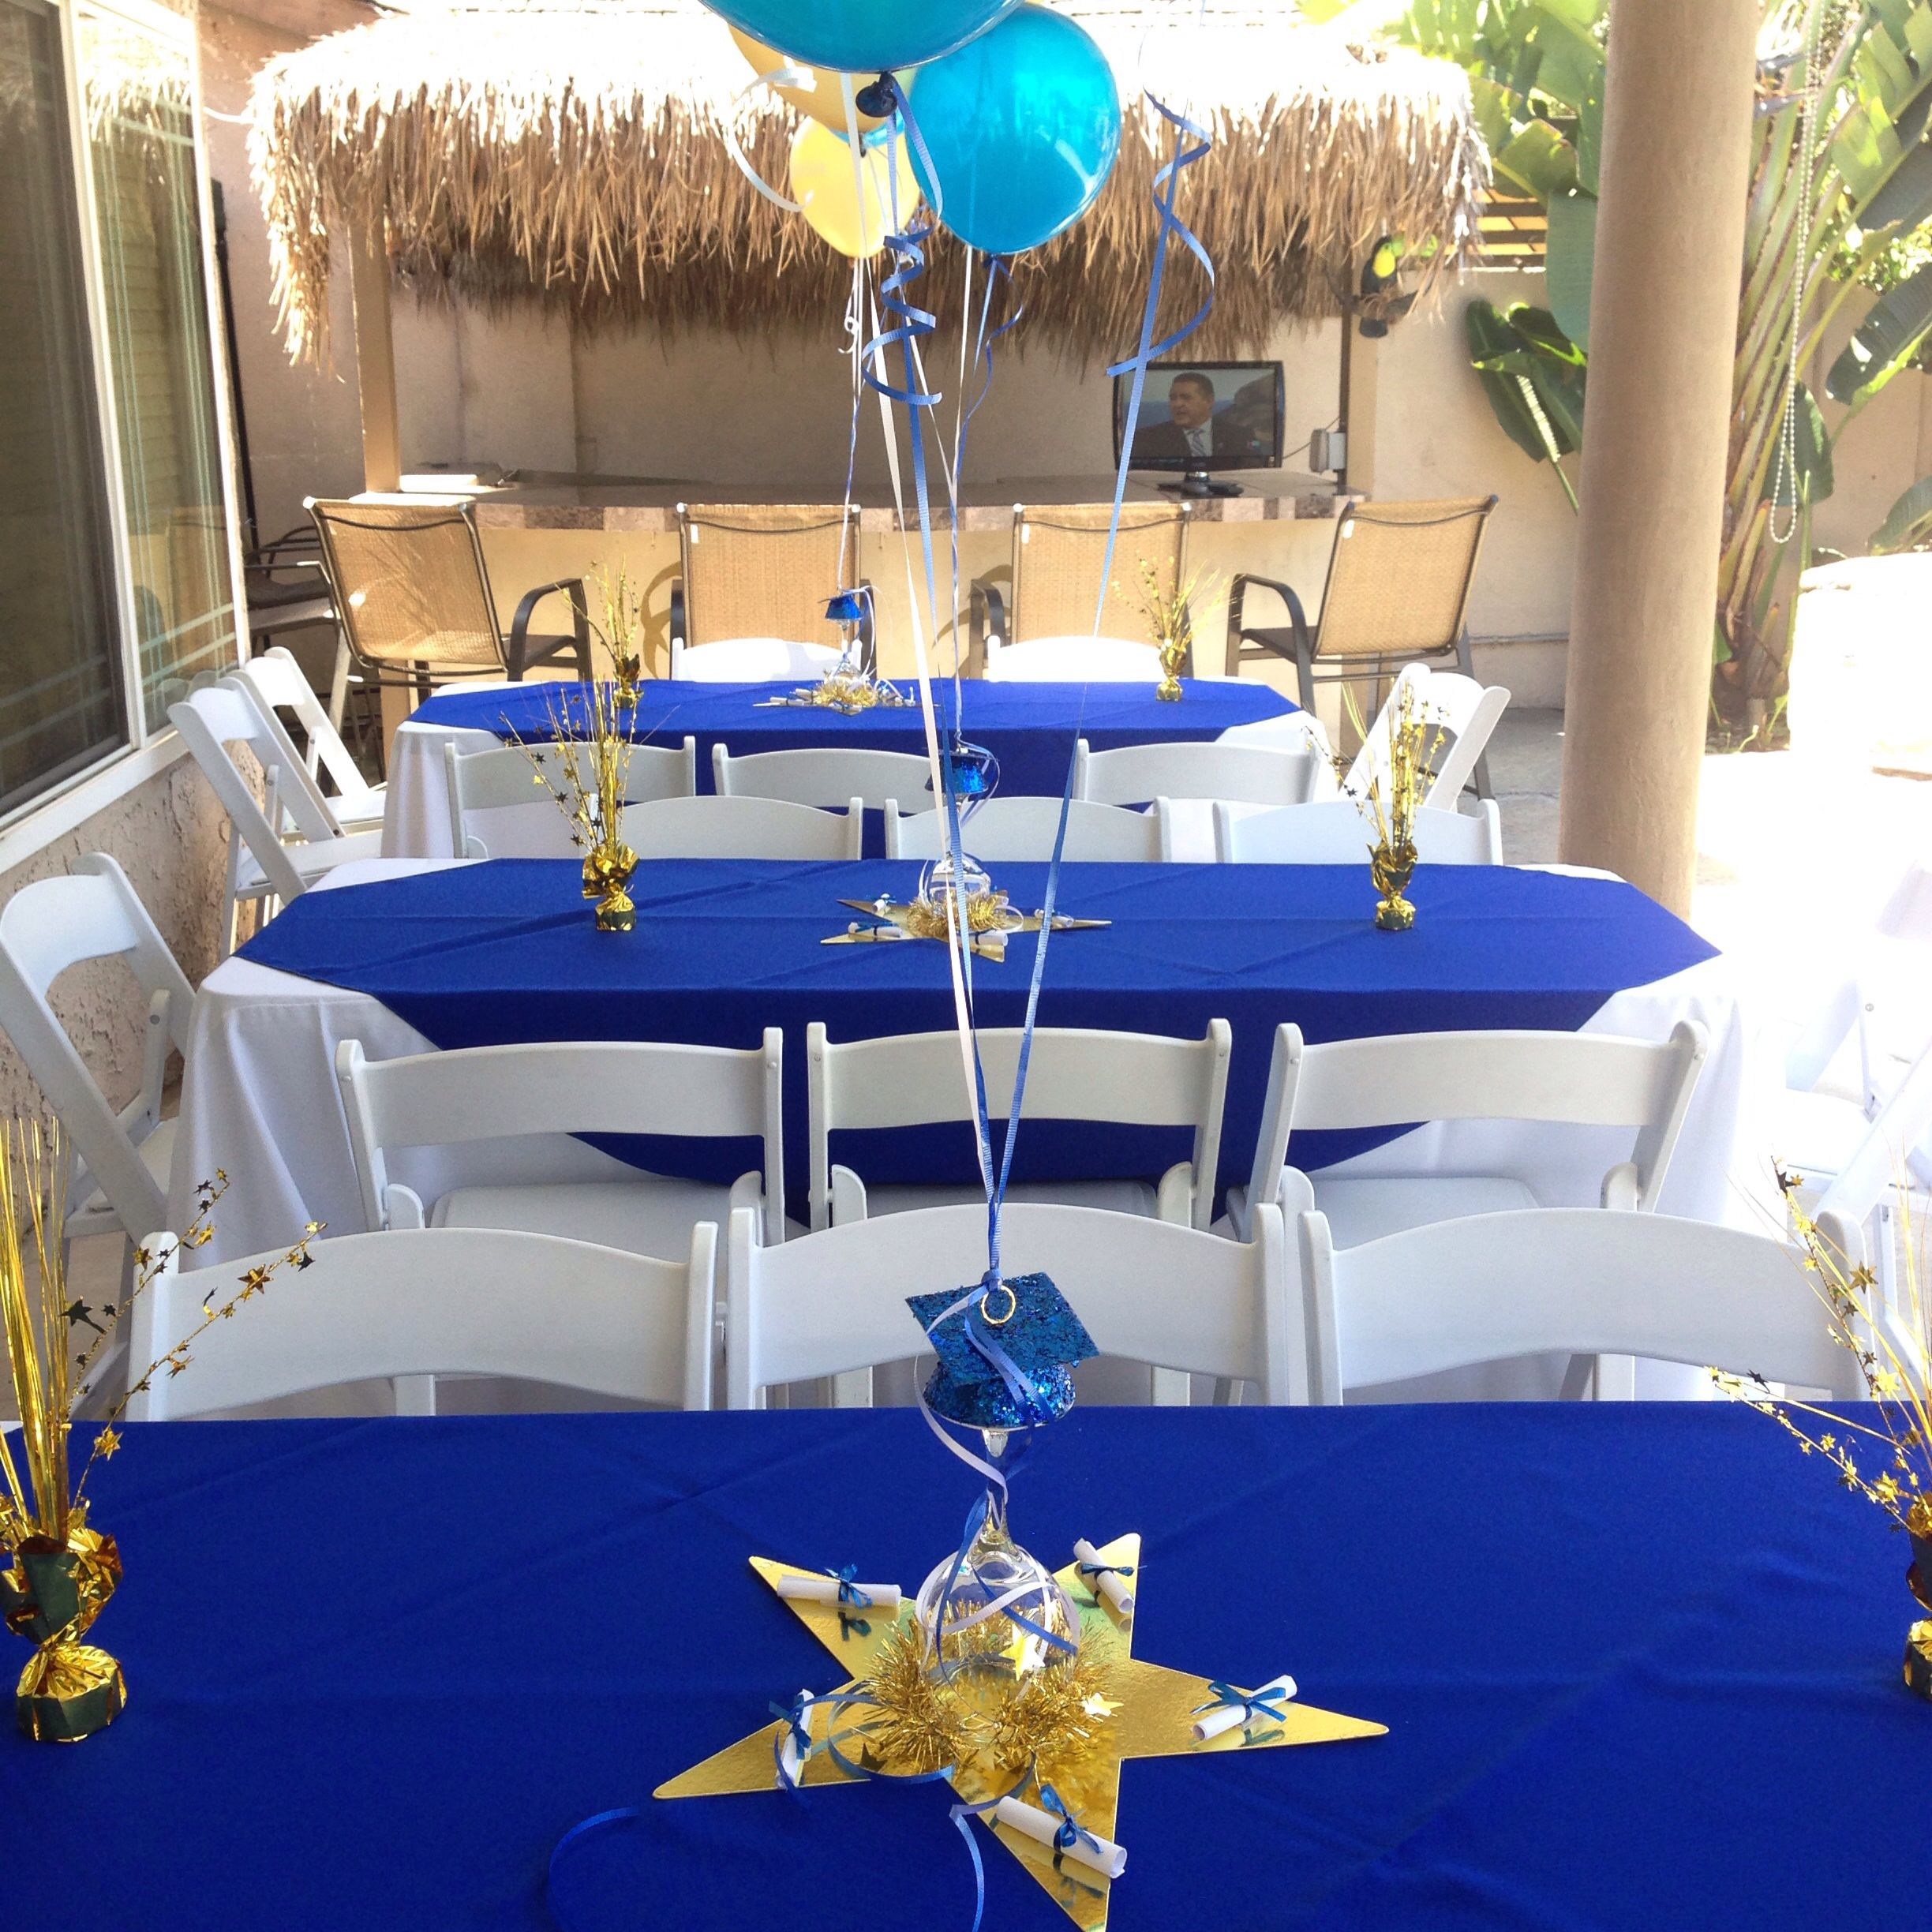 Traditional wedding decor blue and white  High school graduation for guys  Graduation party  Pinterest